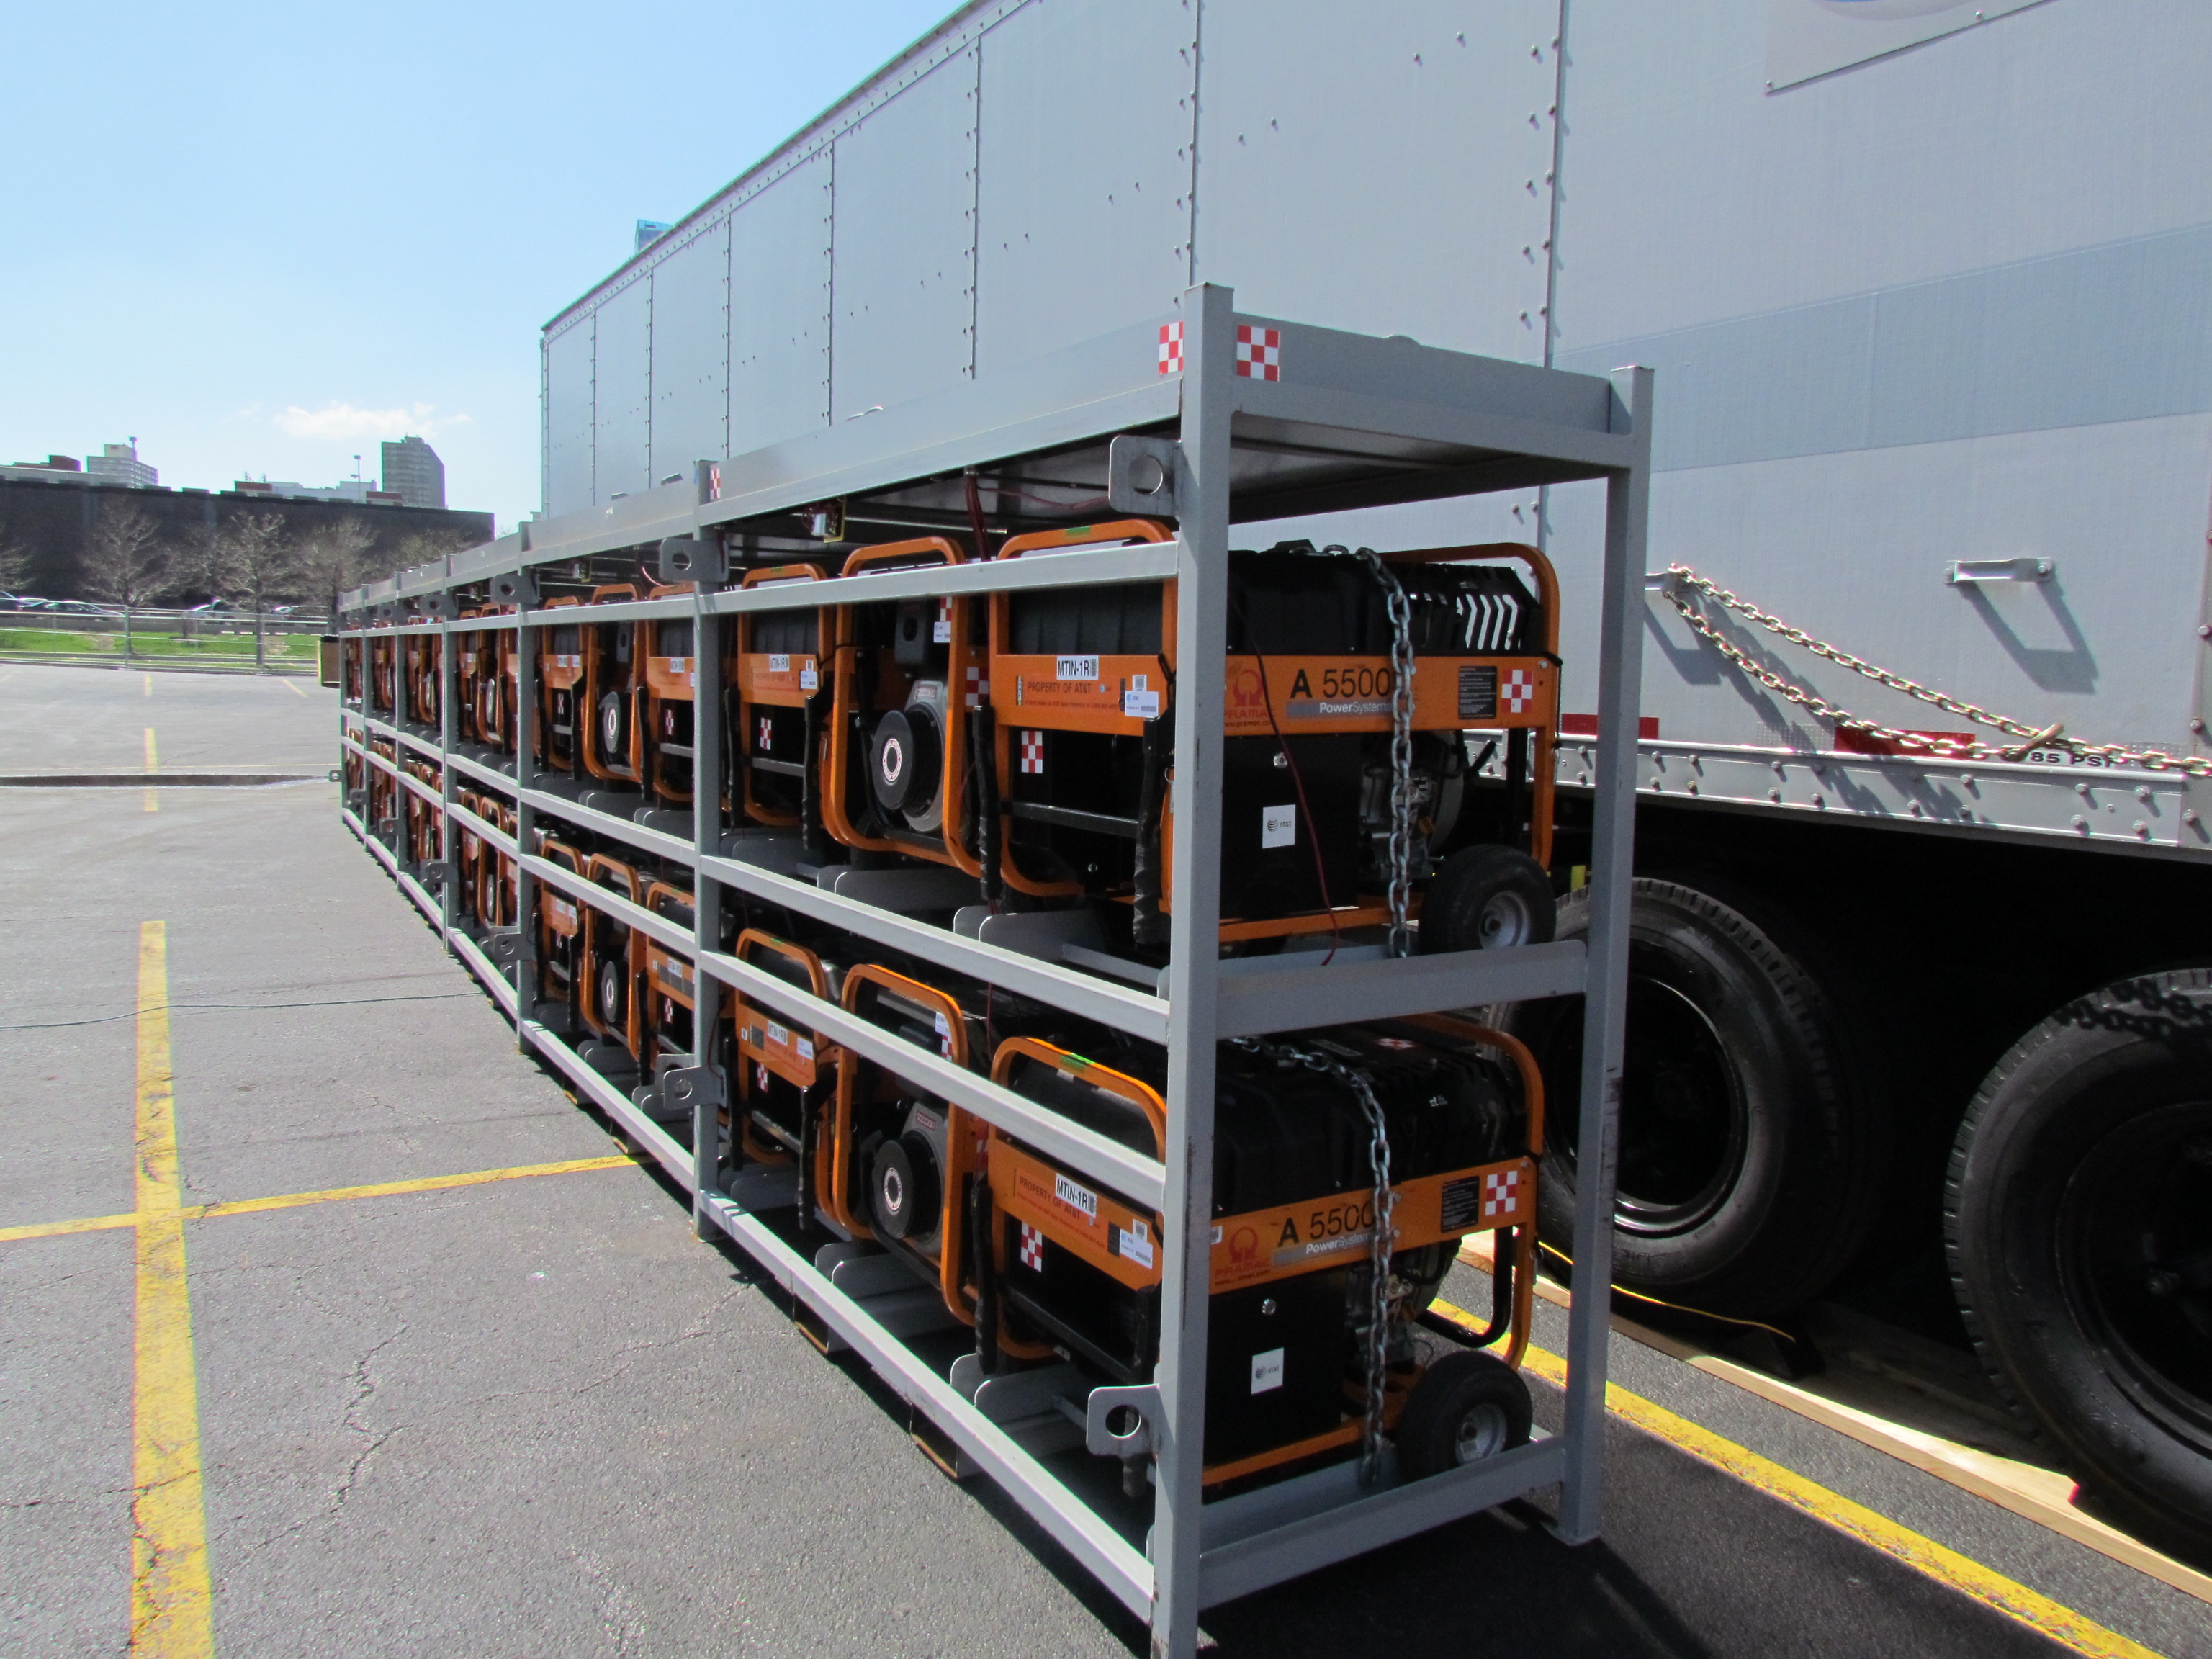 AT&T's disaster recovery team will tap into local power supplies where available but can run its network off generator power if necessary (Photo: Kevin Fitchard)